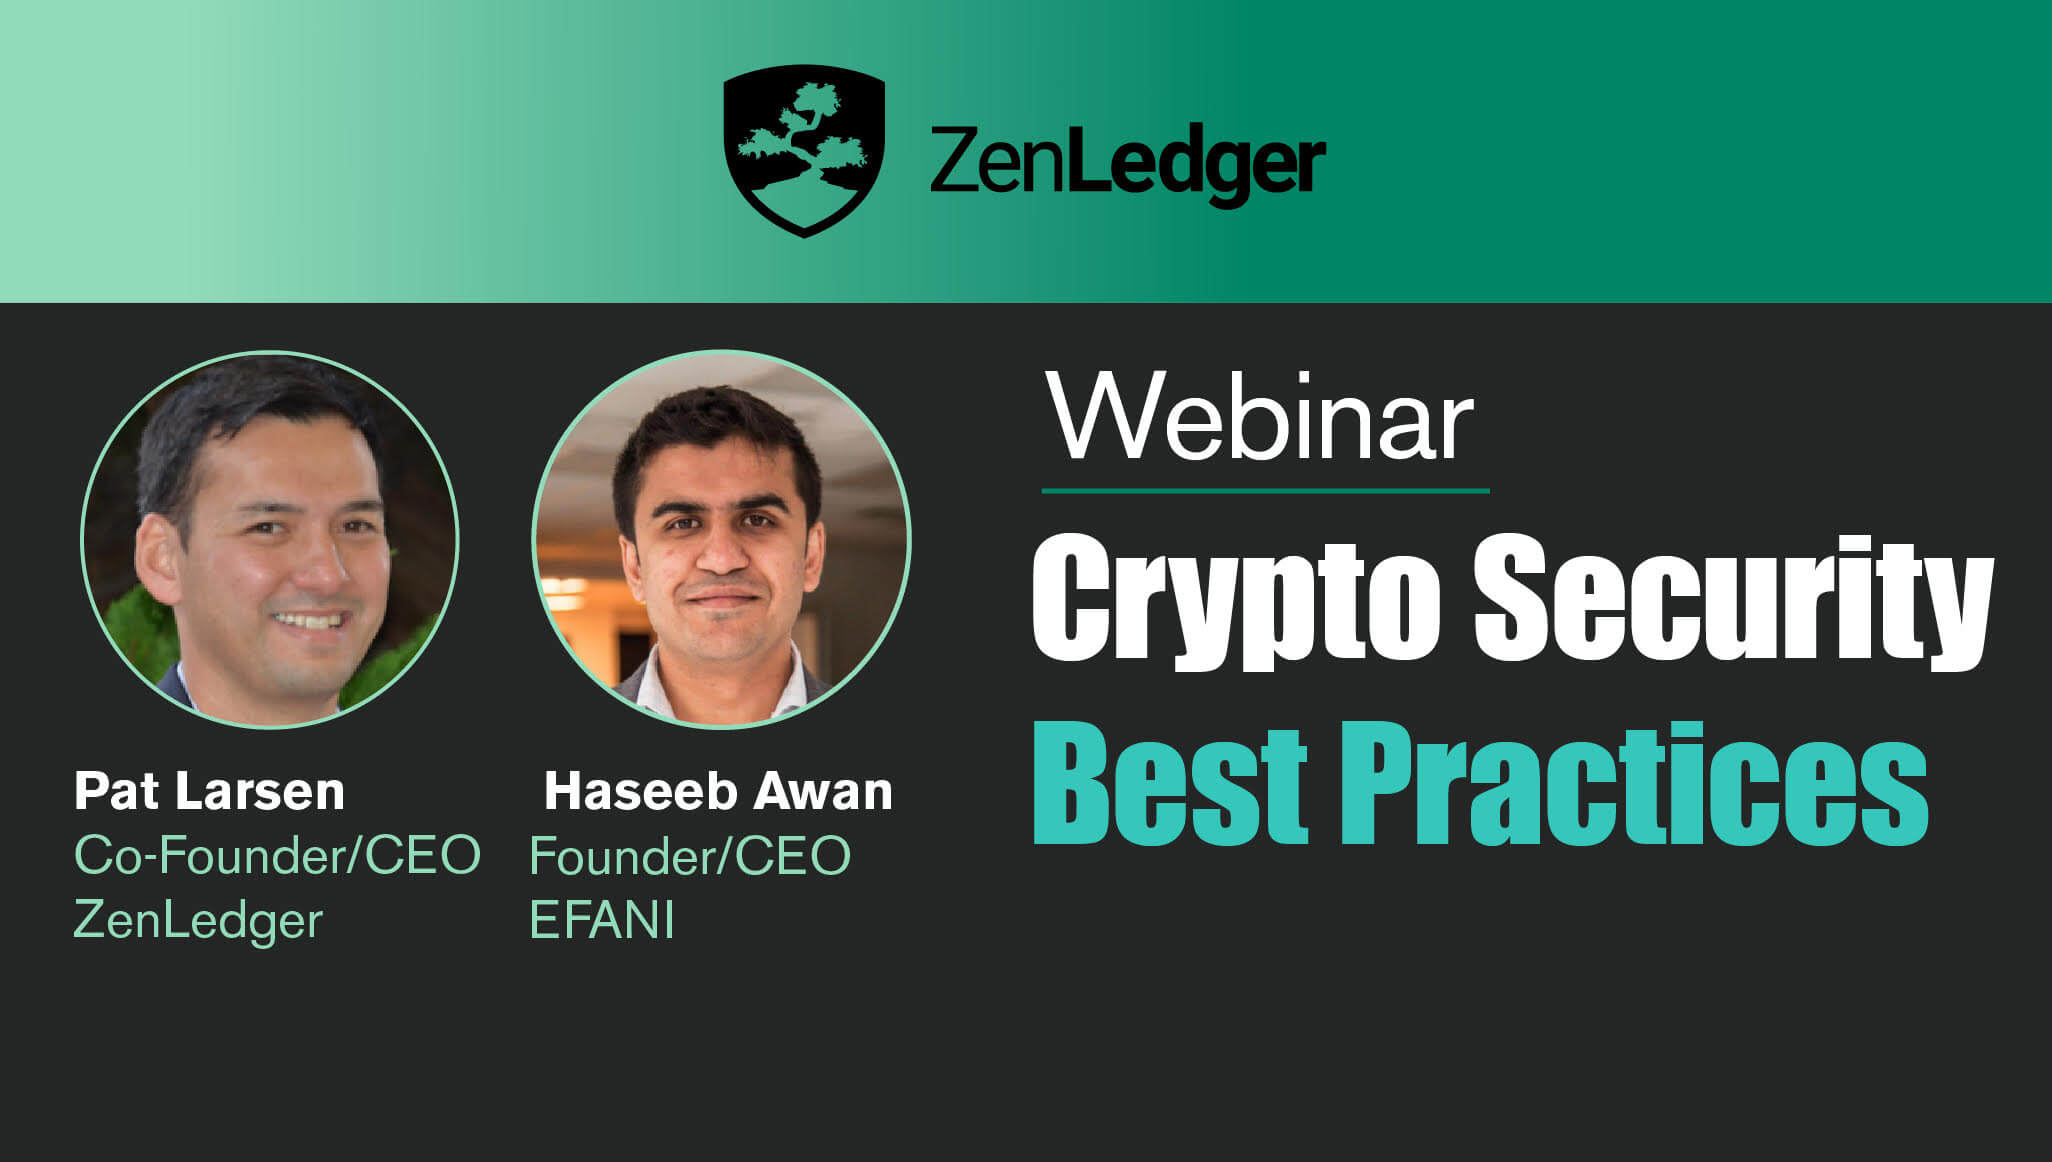 Crypto Security Best Practices